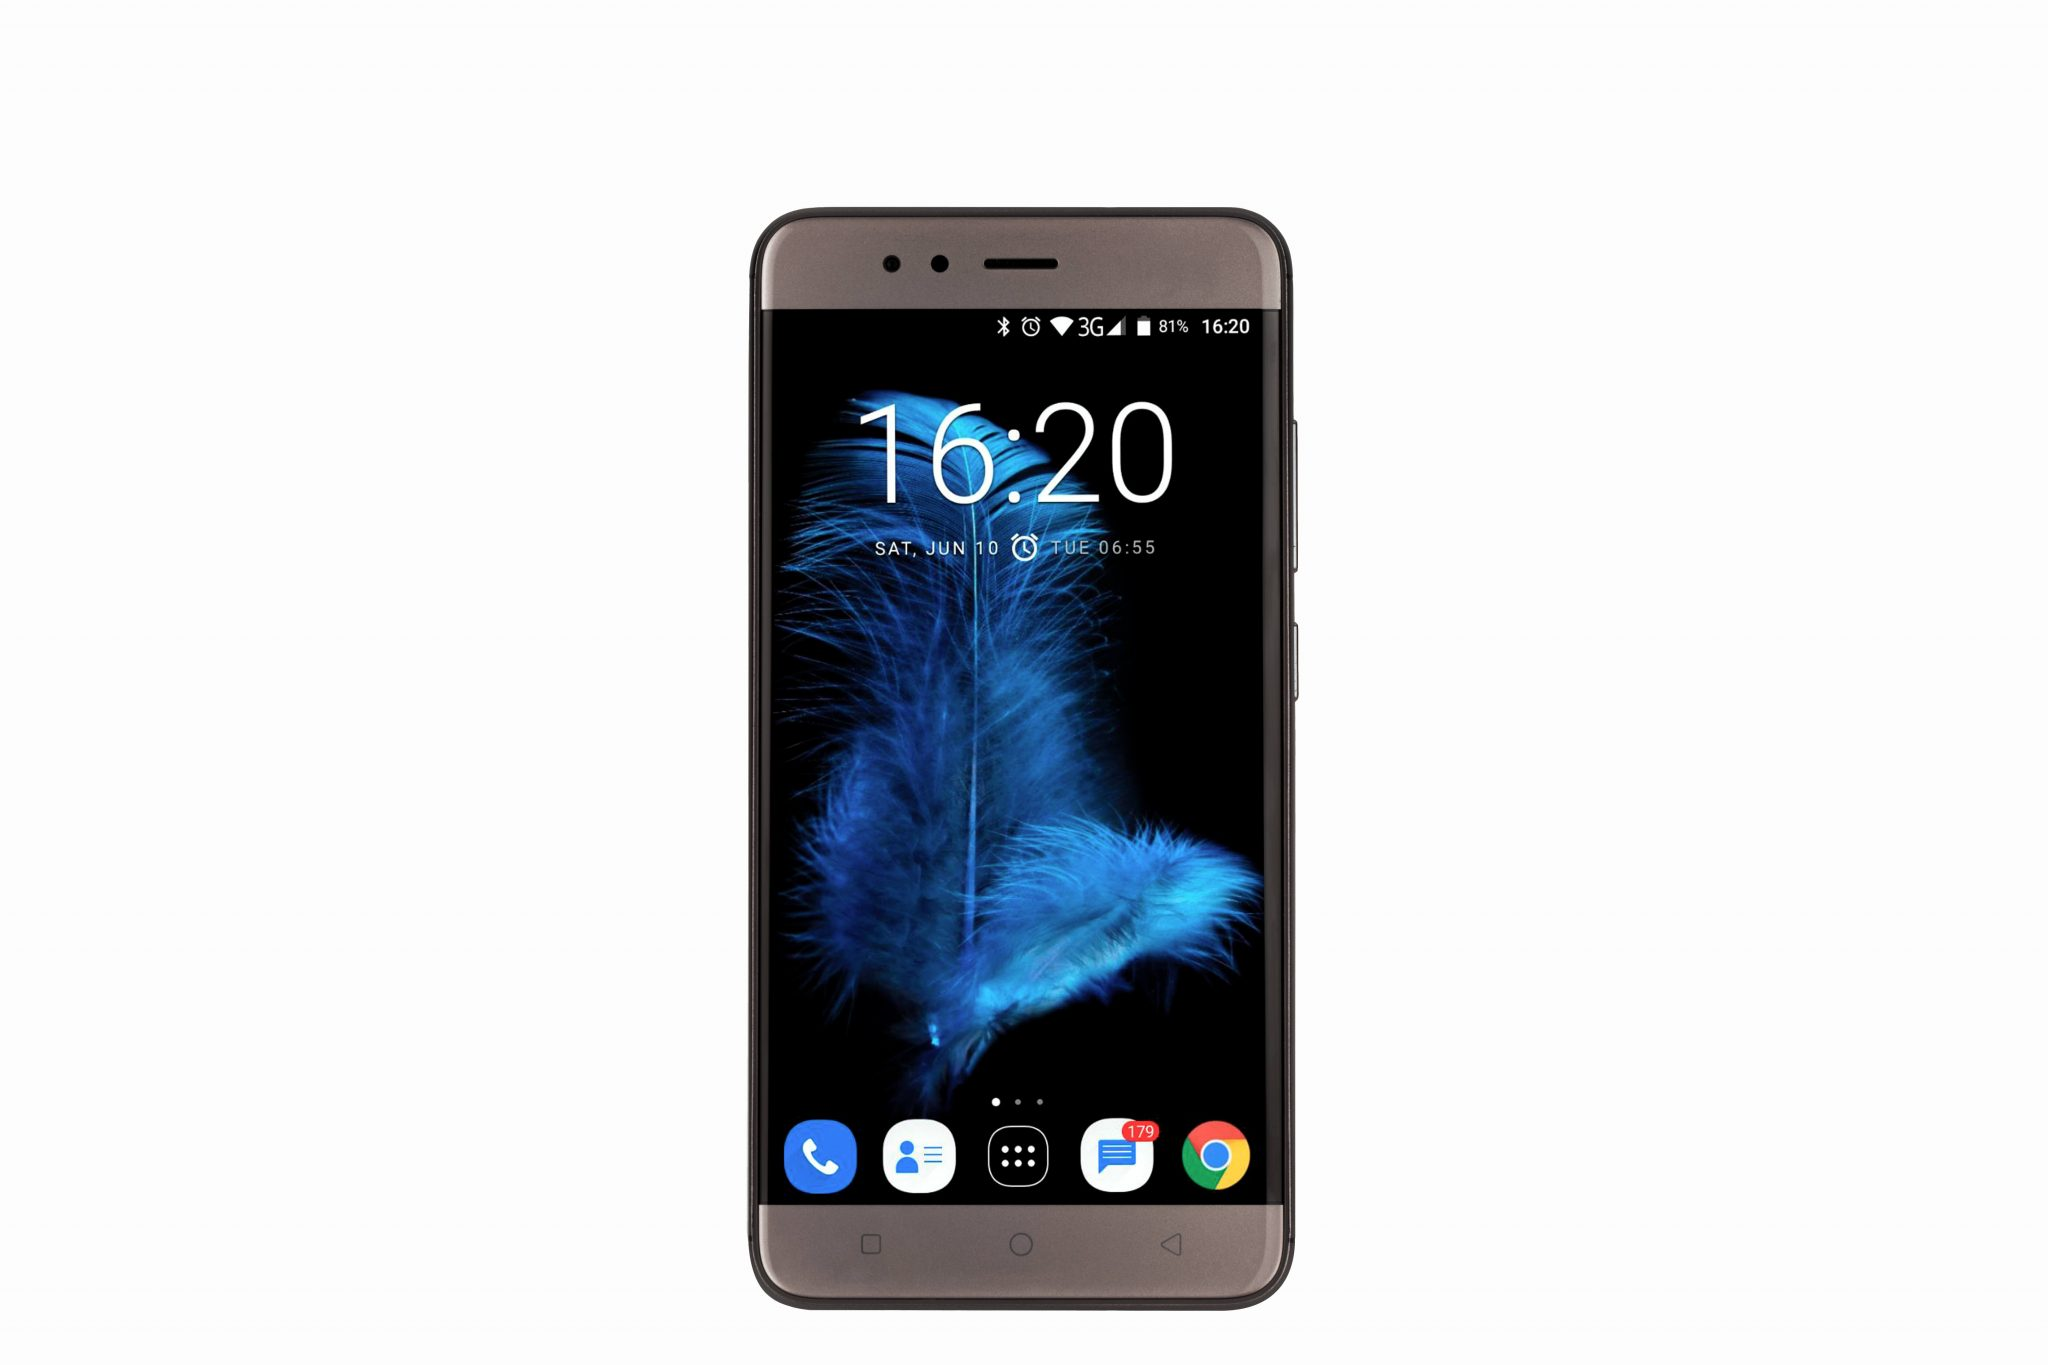 InFocus Turbo 5 best smartphone below 8000